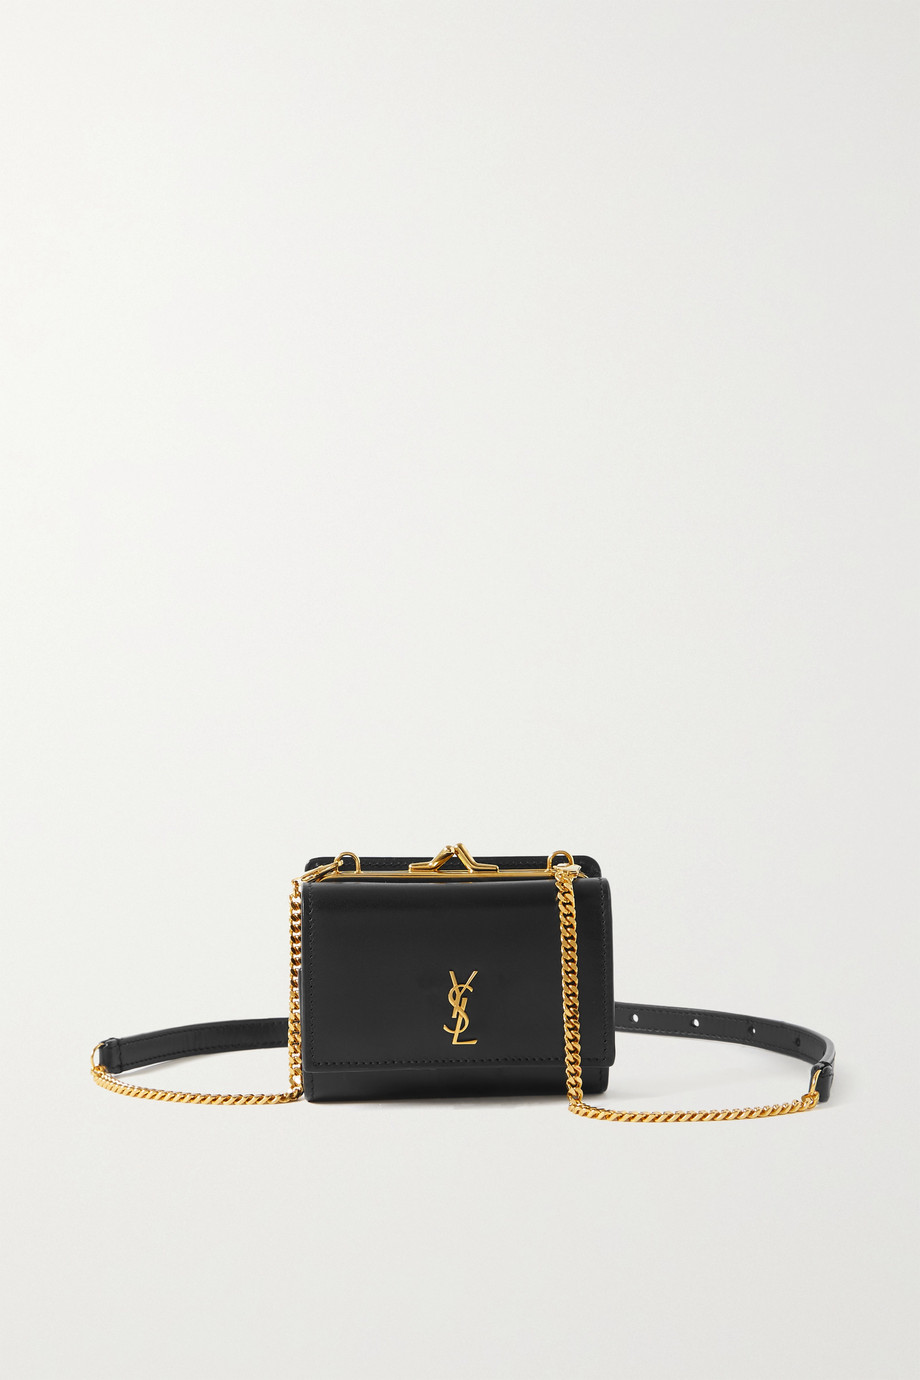 SAINT LAURENT Marsupio mini leather shoulder bag